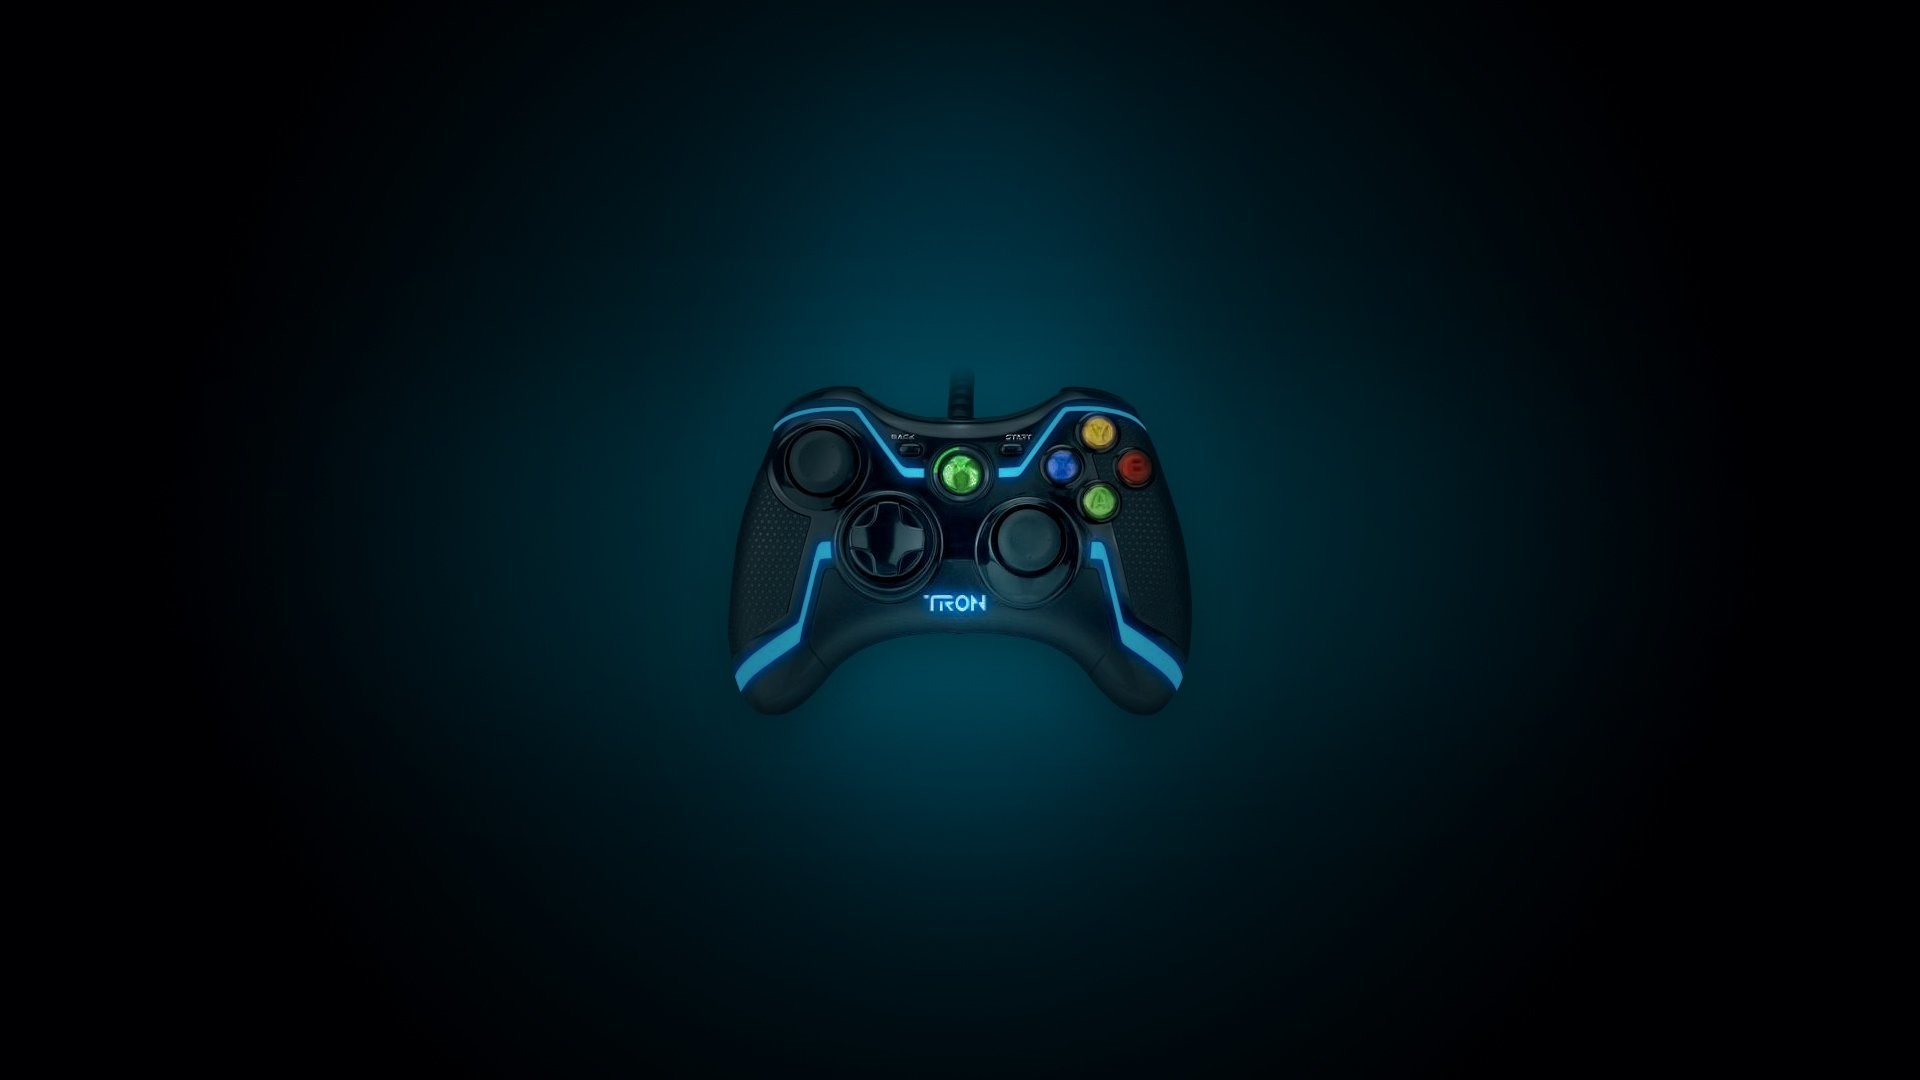 1920x1080 Ps3 Tron Controller Wallpaper · cool gaming backgrounds ...